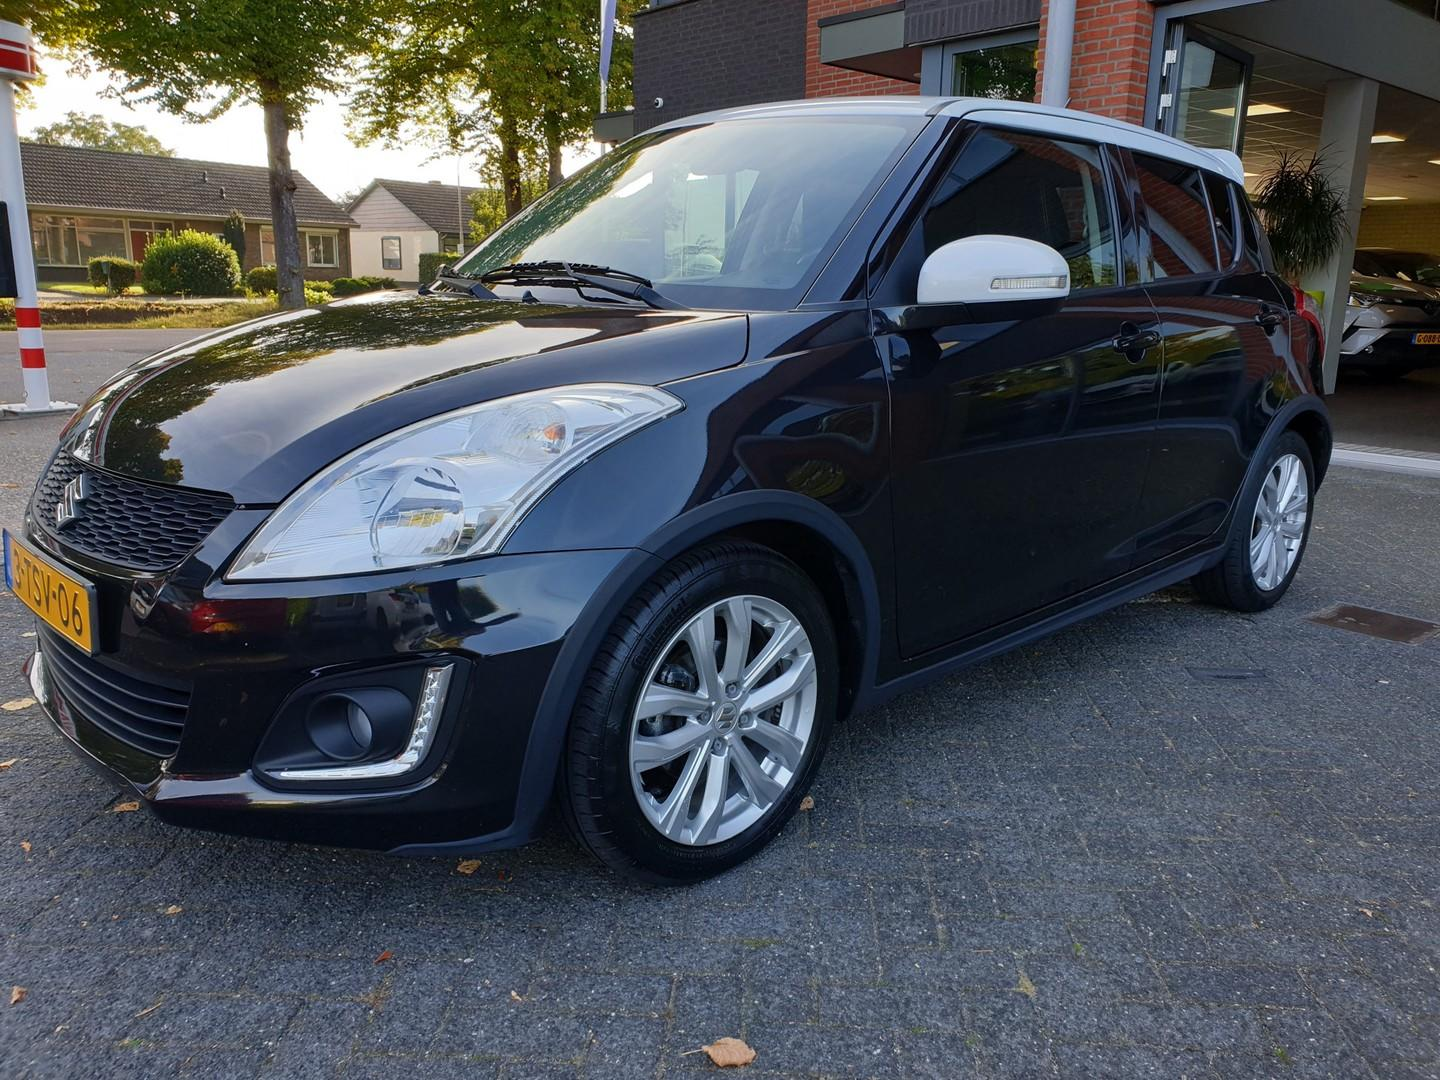 Suzuki Swift 1.2 s-edition easss